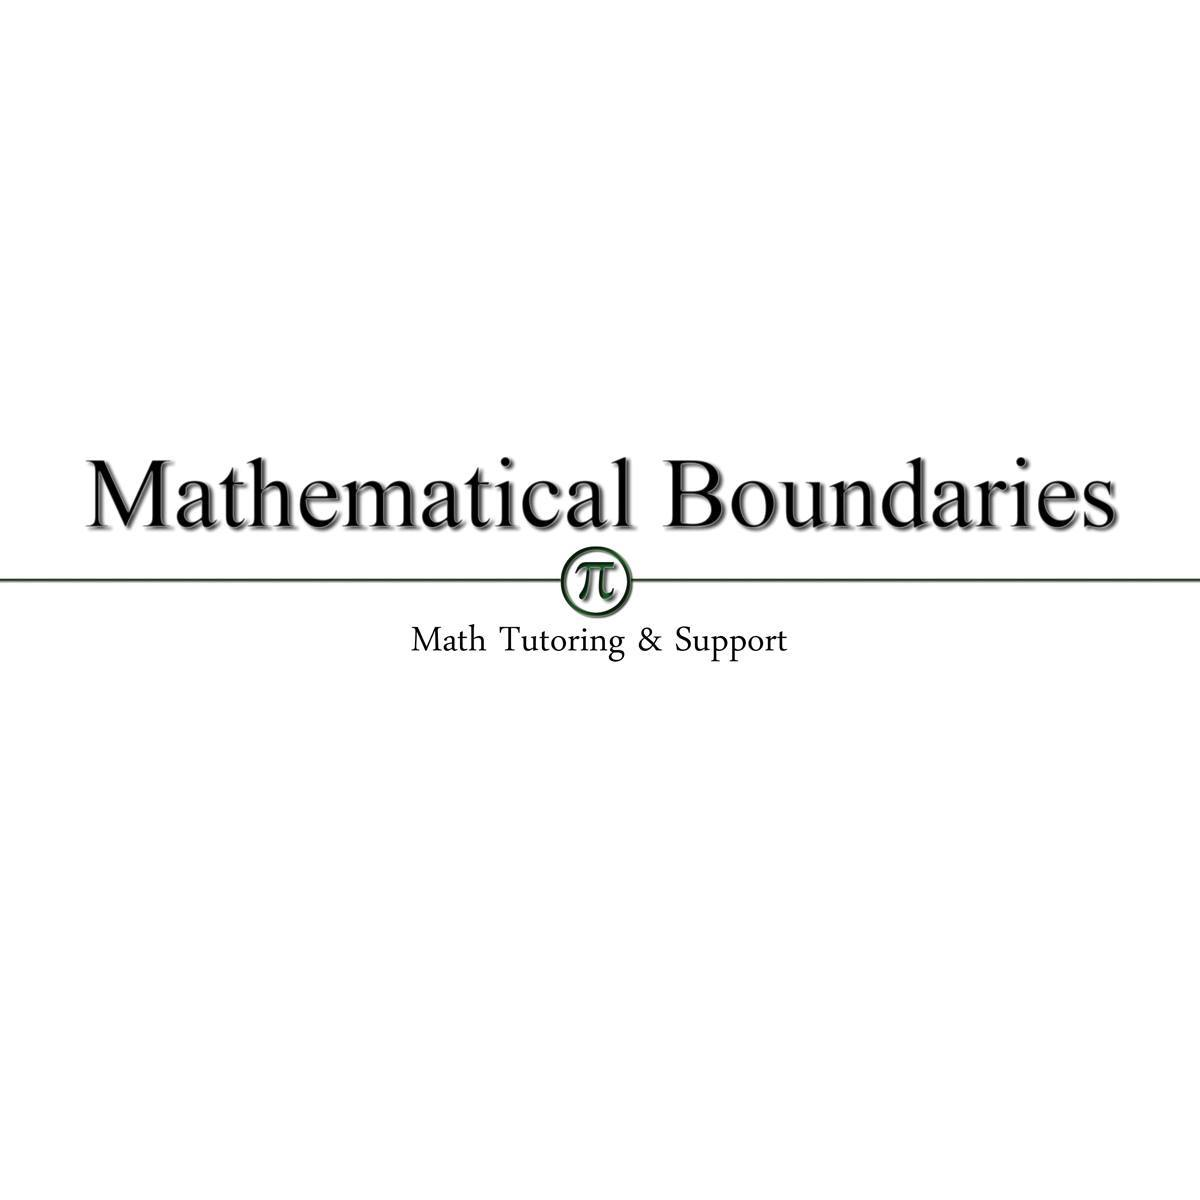 Mathematical Boundaries